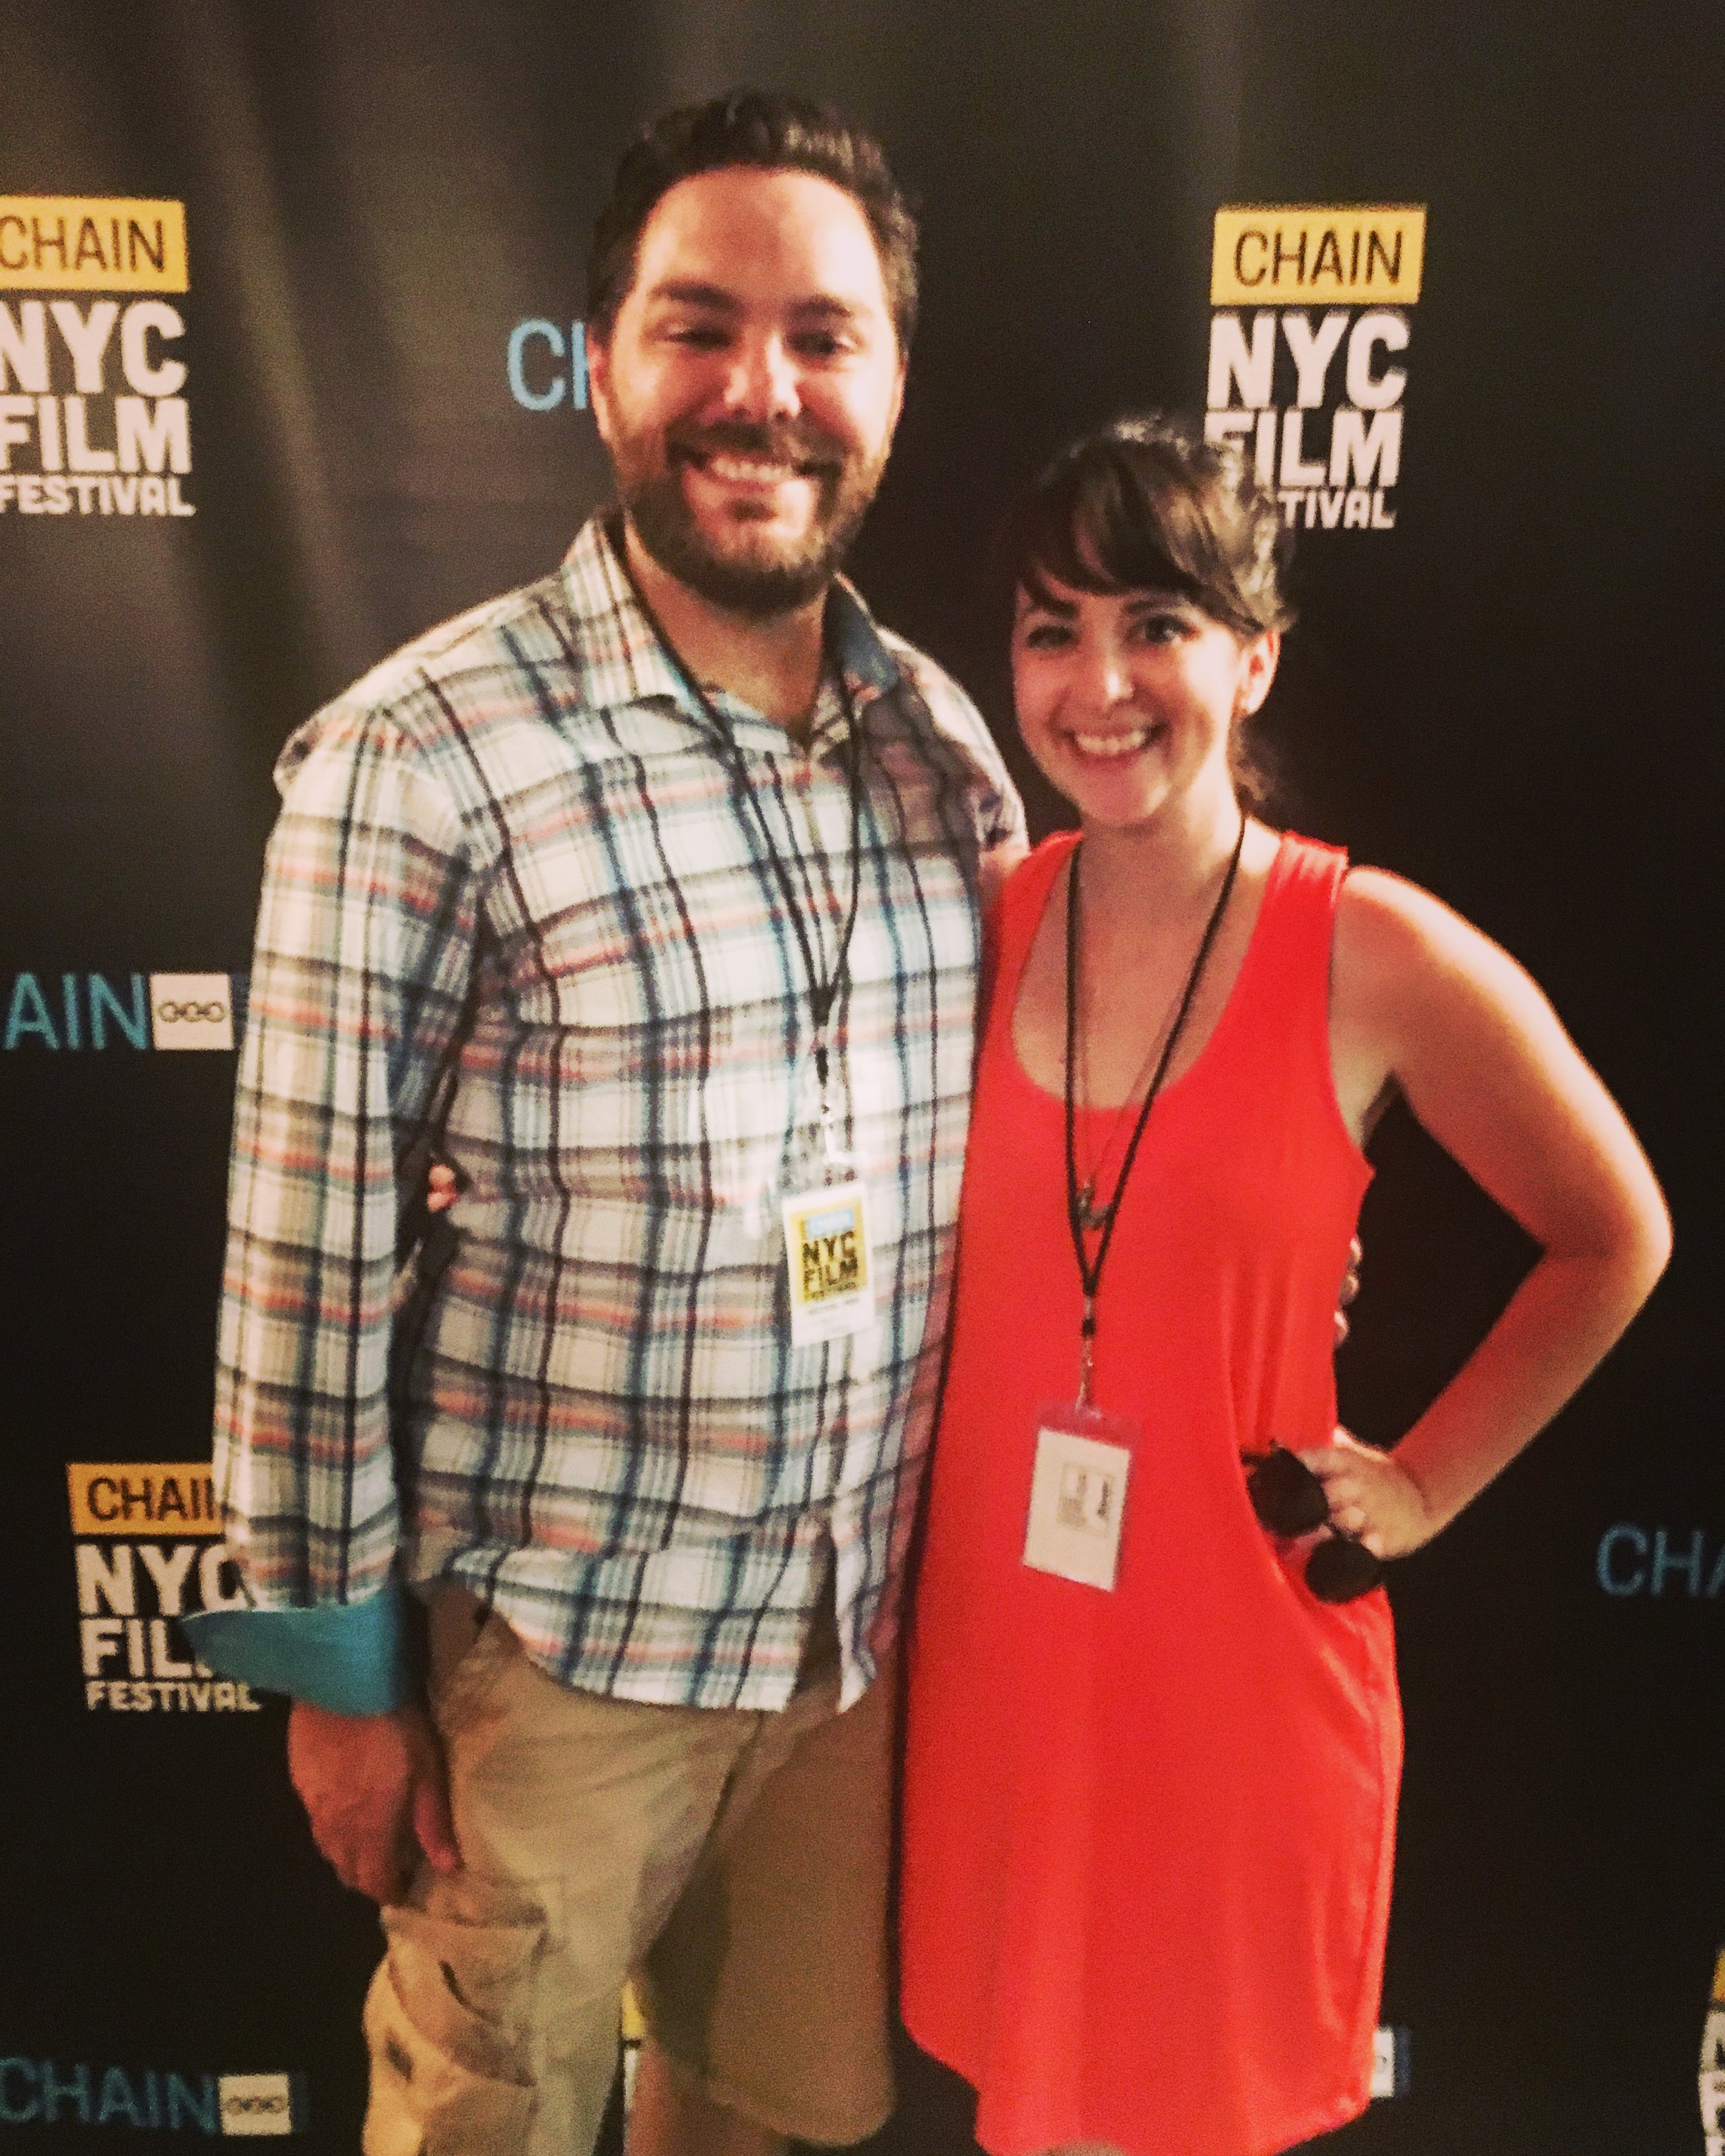 Lincoln and Rachel at the Chain NYC Film Festival 2016